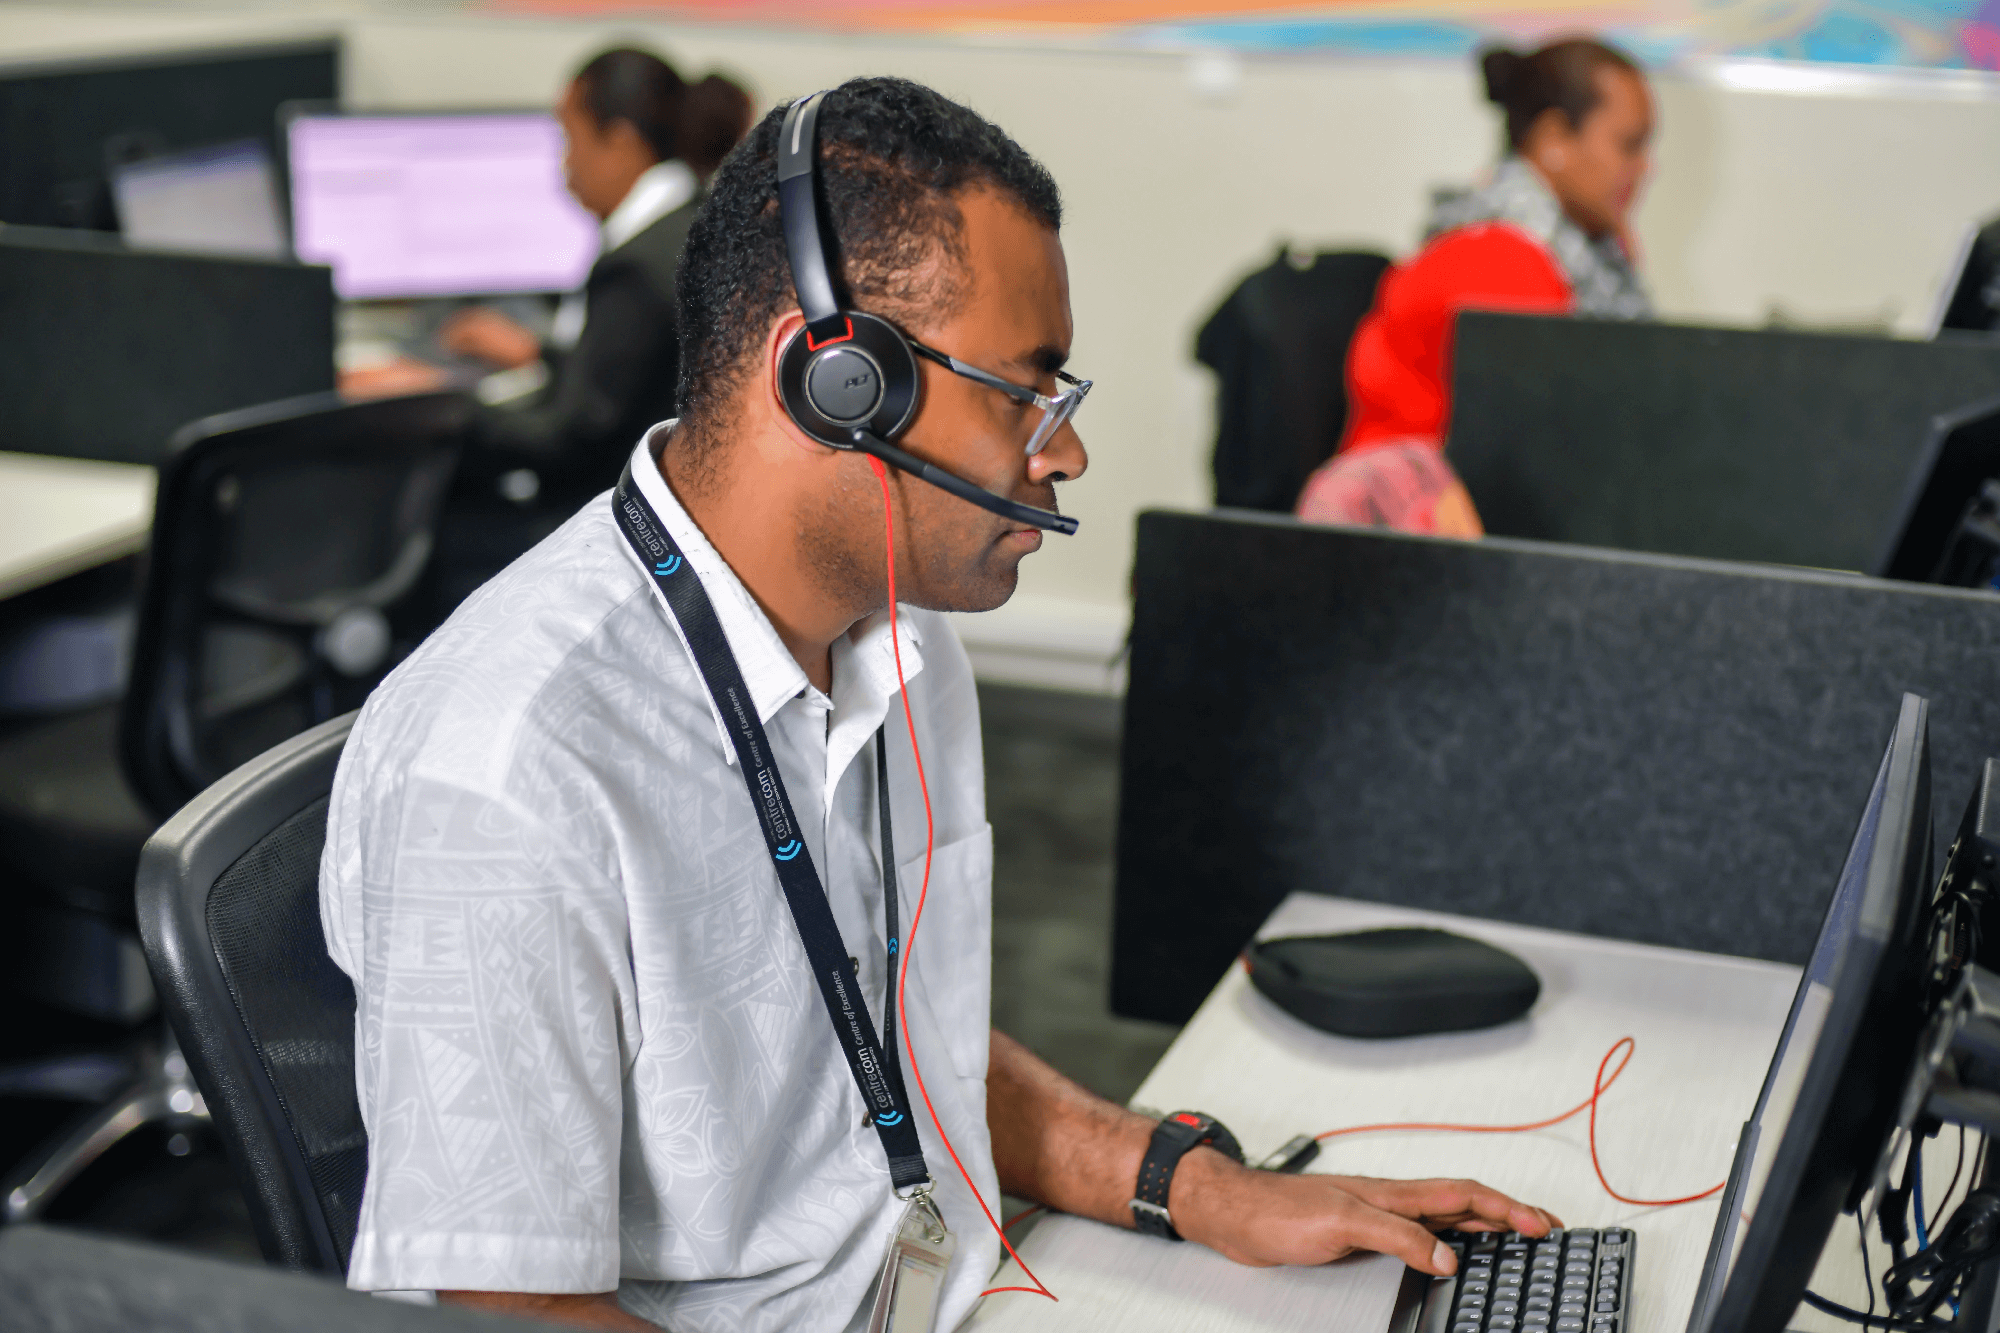 Fiji's BPO sector secured contracts worth over 5K